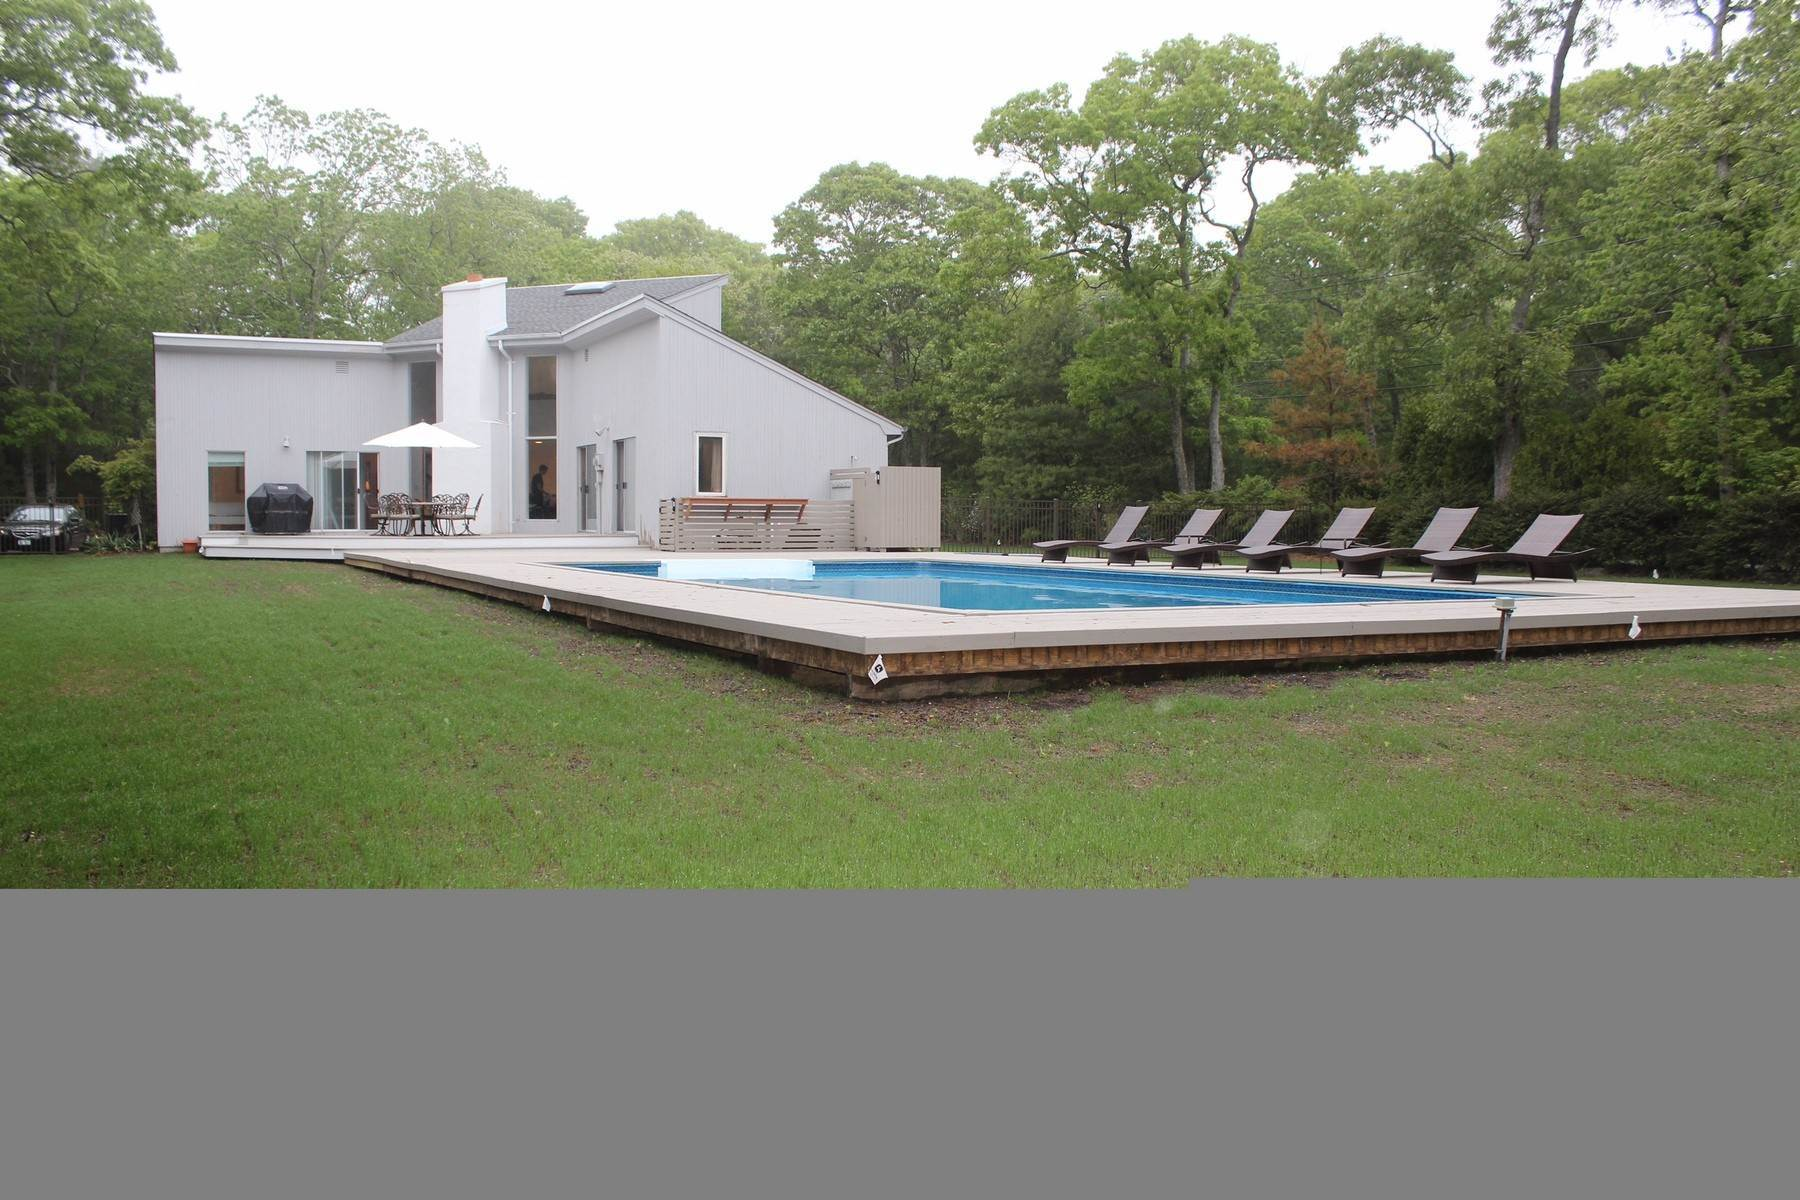 2. Single Family Home at Quogue 4 Bedroom Summer Rental With Pool Quogue Village, NY 11959